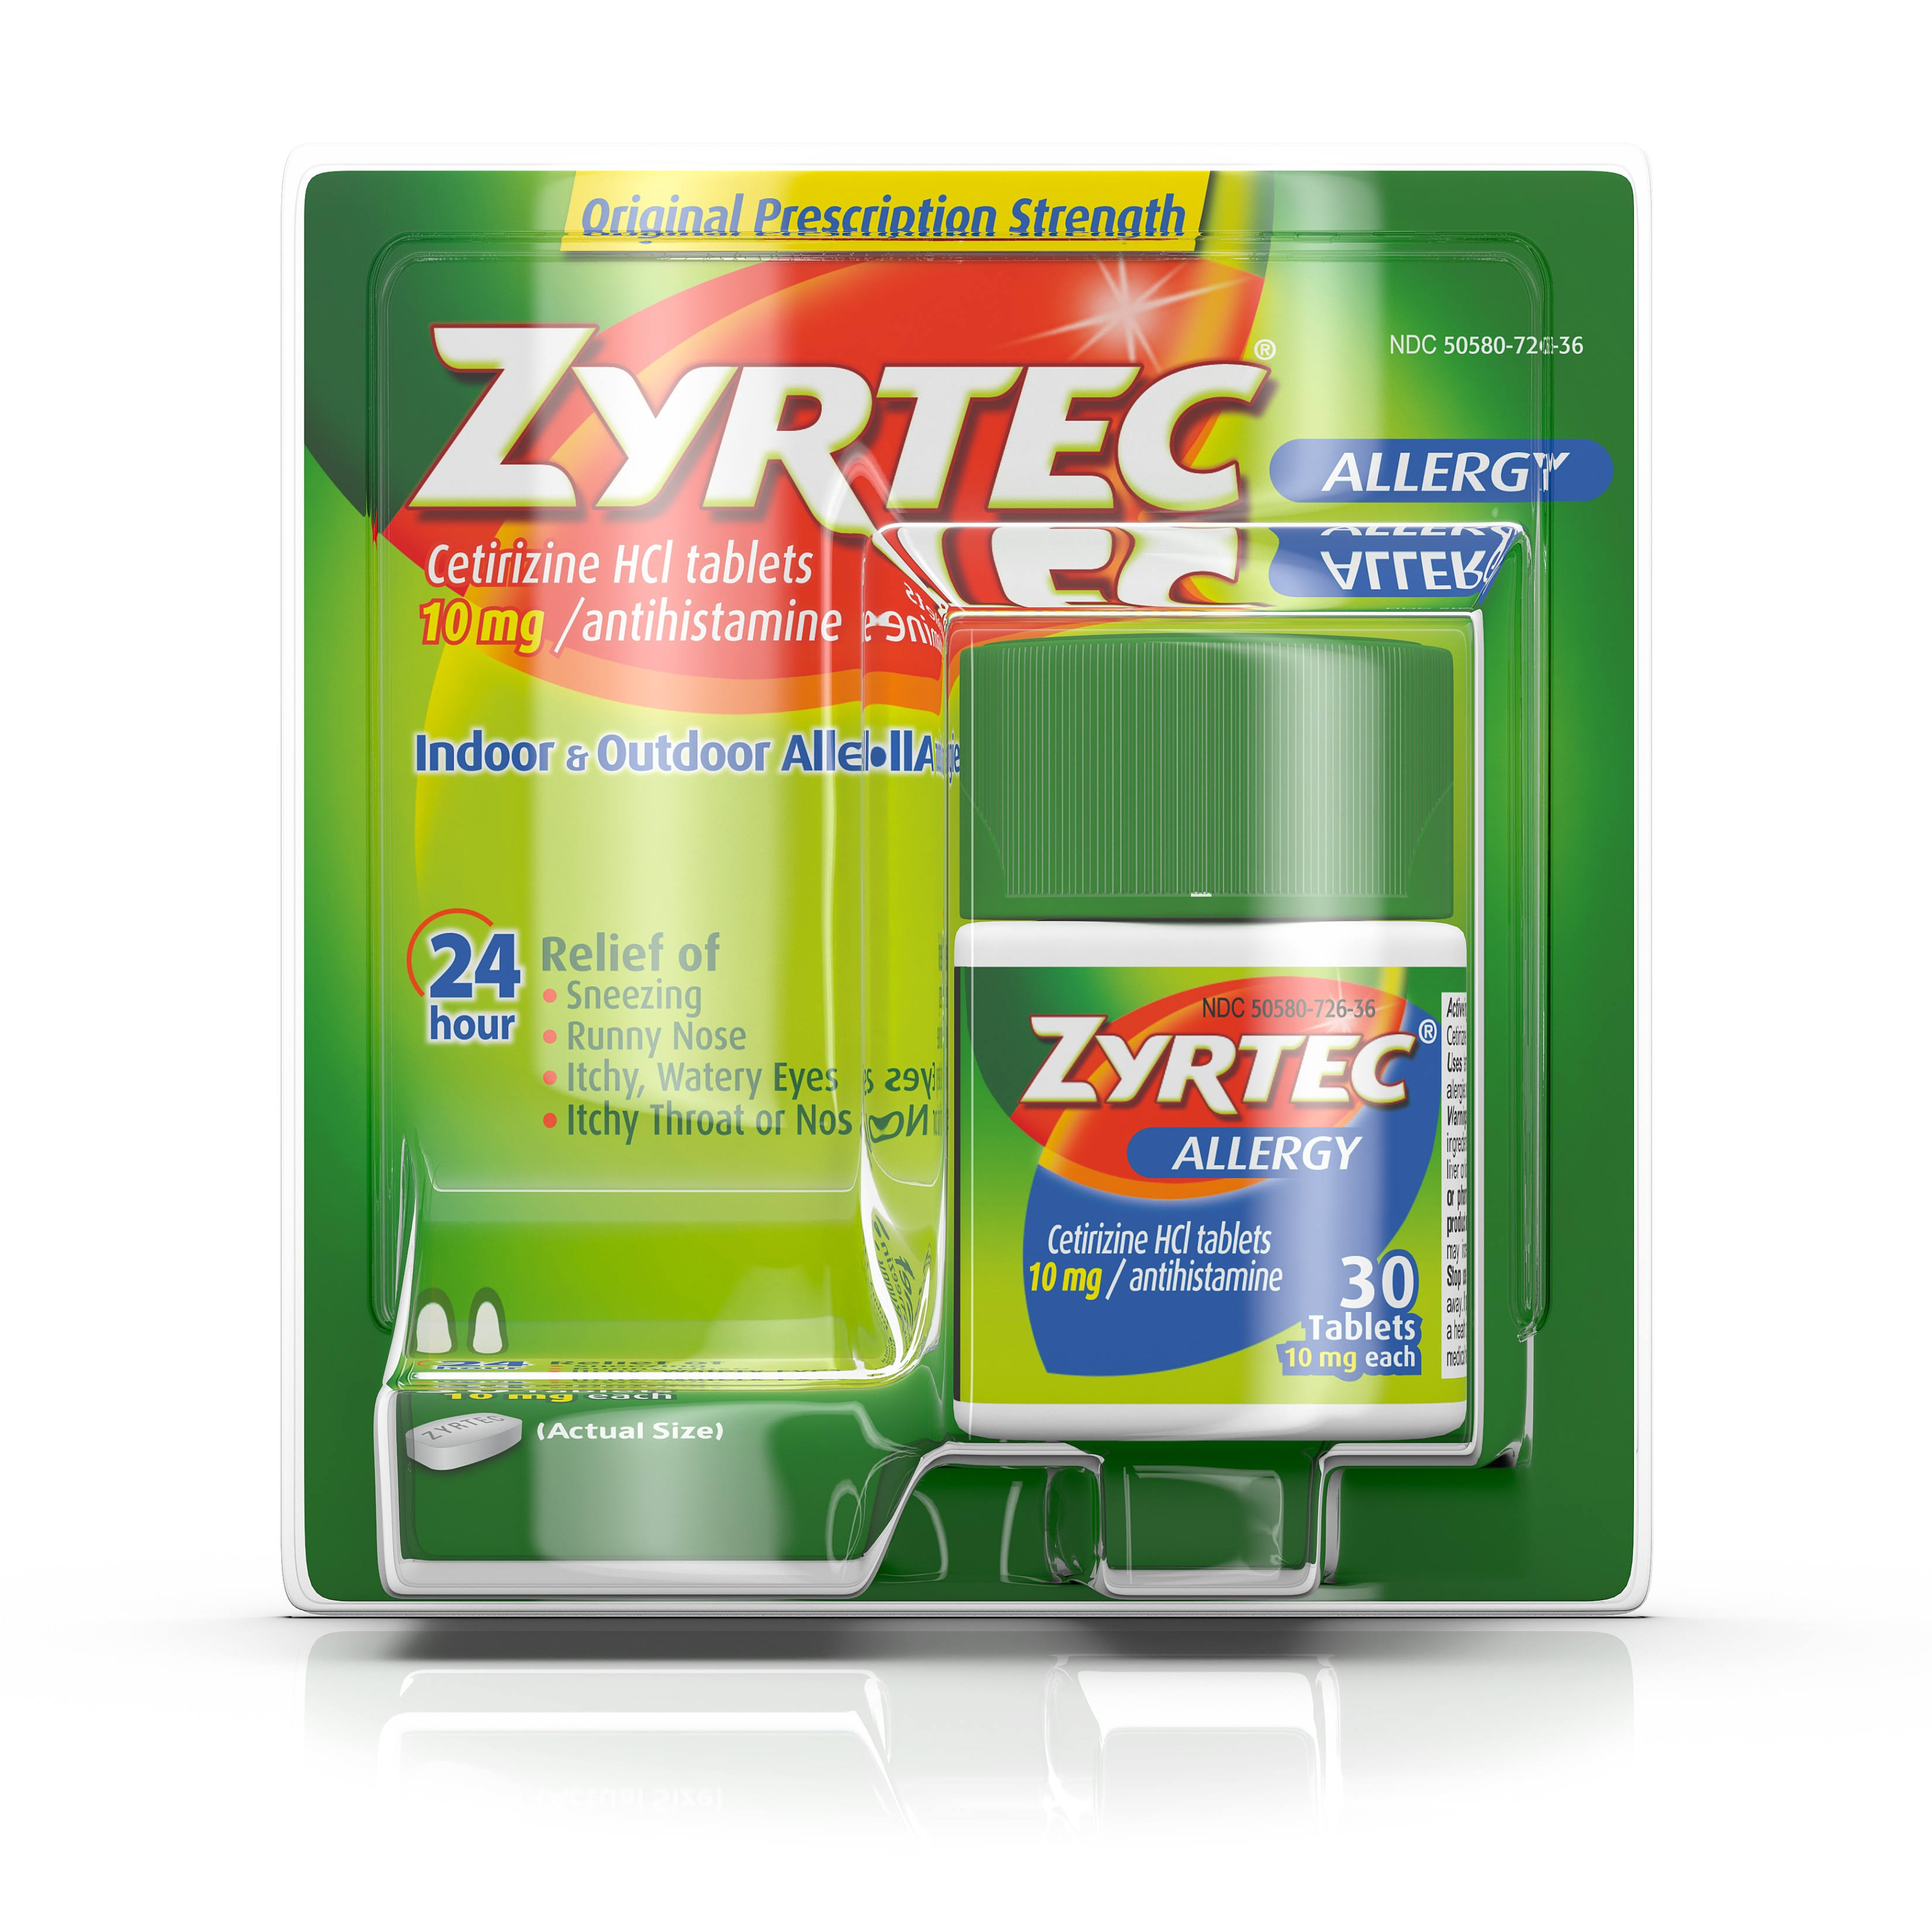 Zyrtec Allergy Relief - 10mg, 30 Tablets